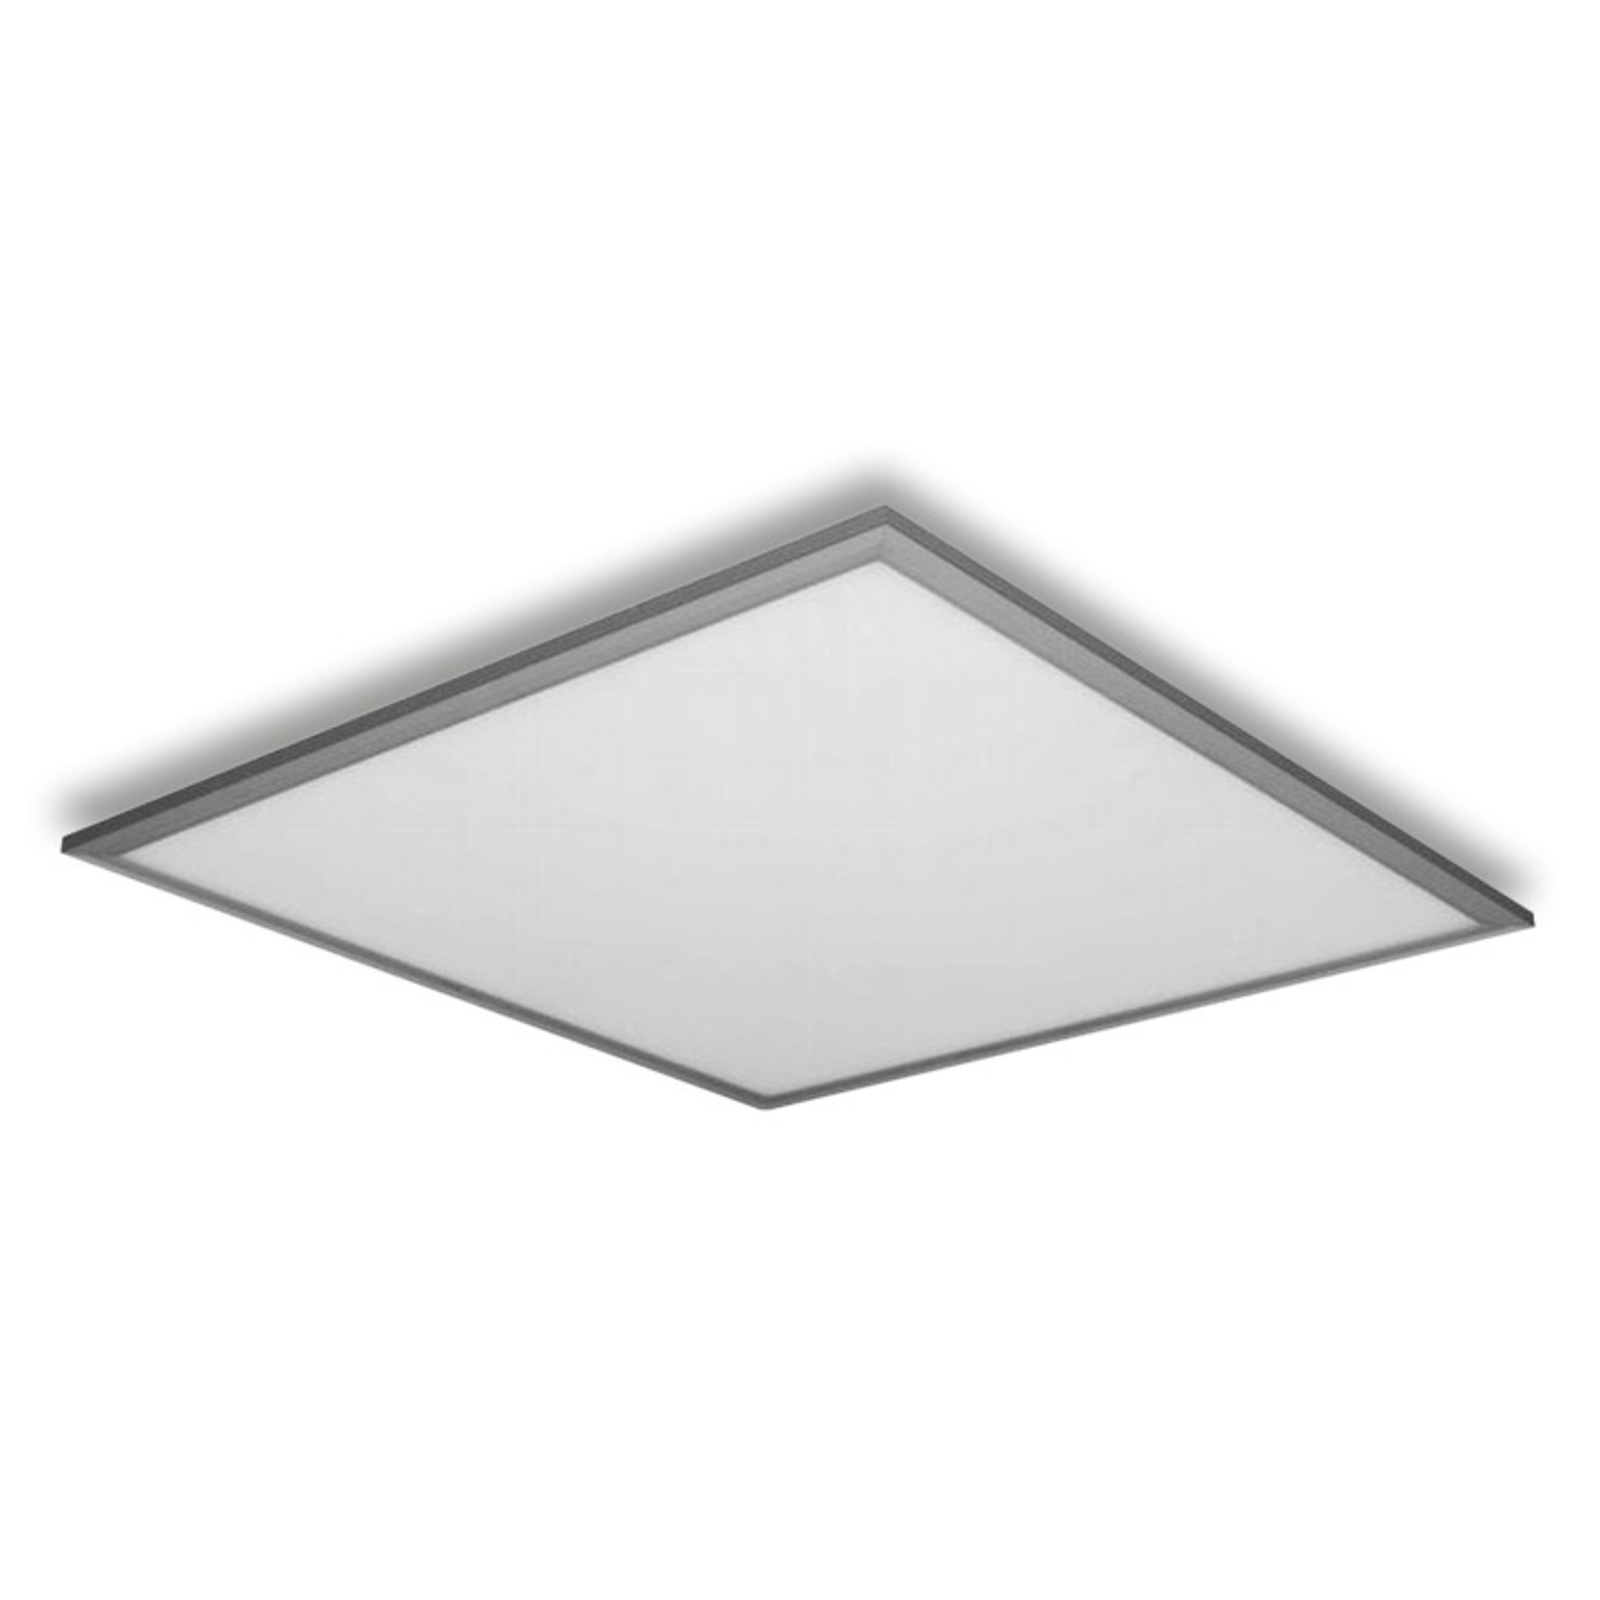 LED-All-in-One-Panel Edge, bianco universale DALI